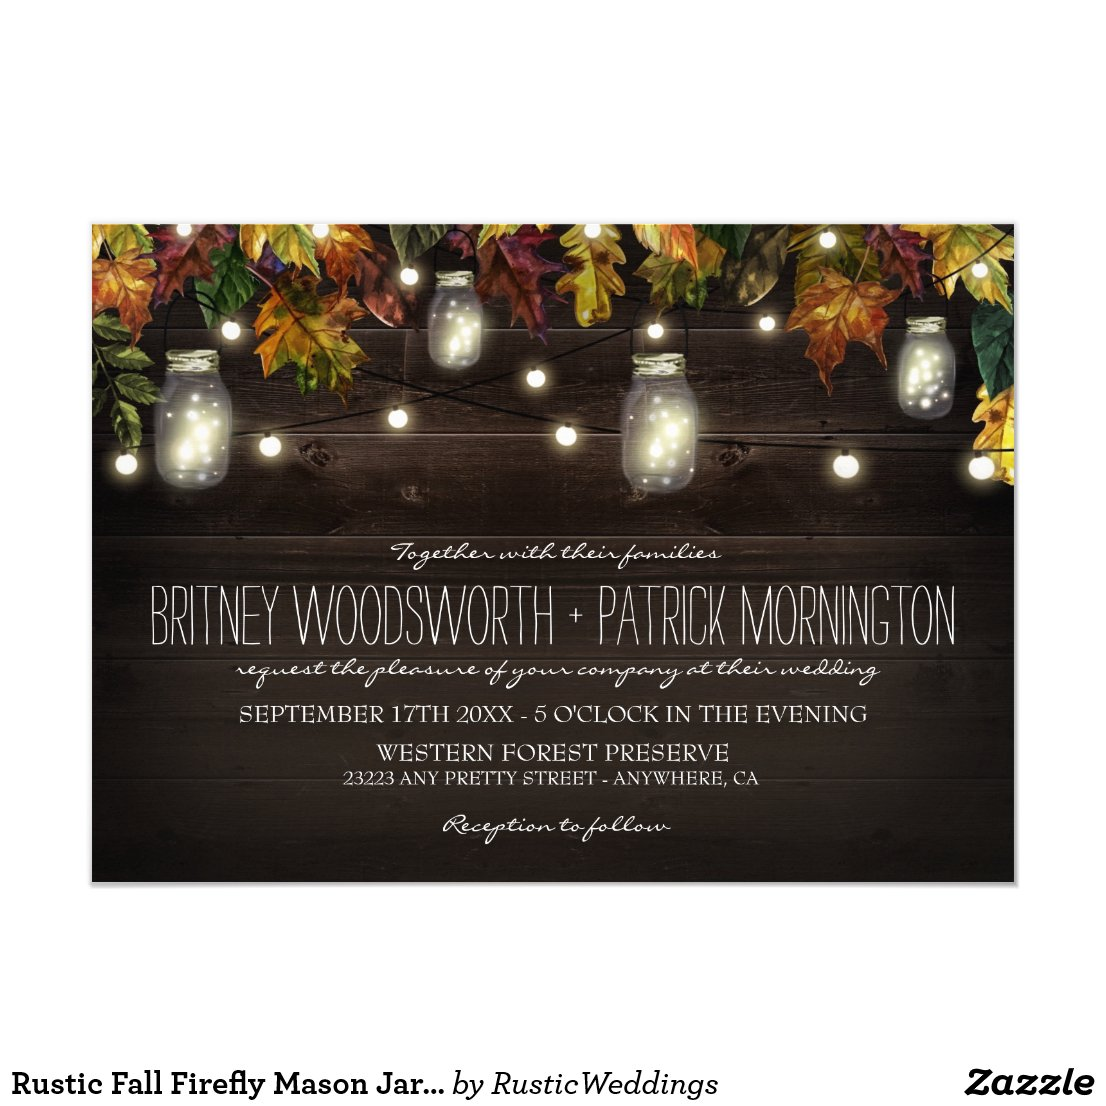 Rustic Fall Firefly Mason Jar Wedding Invitations